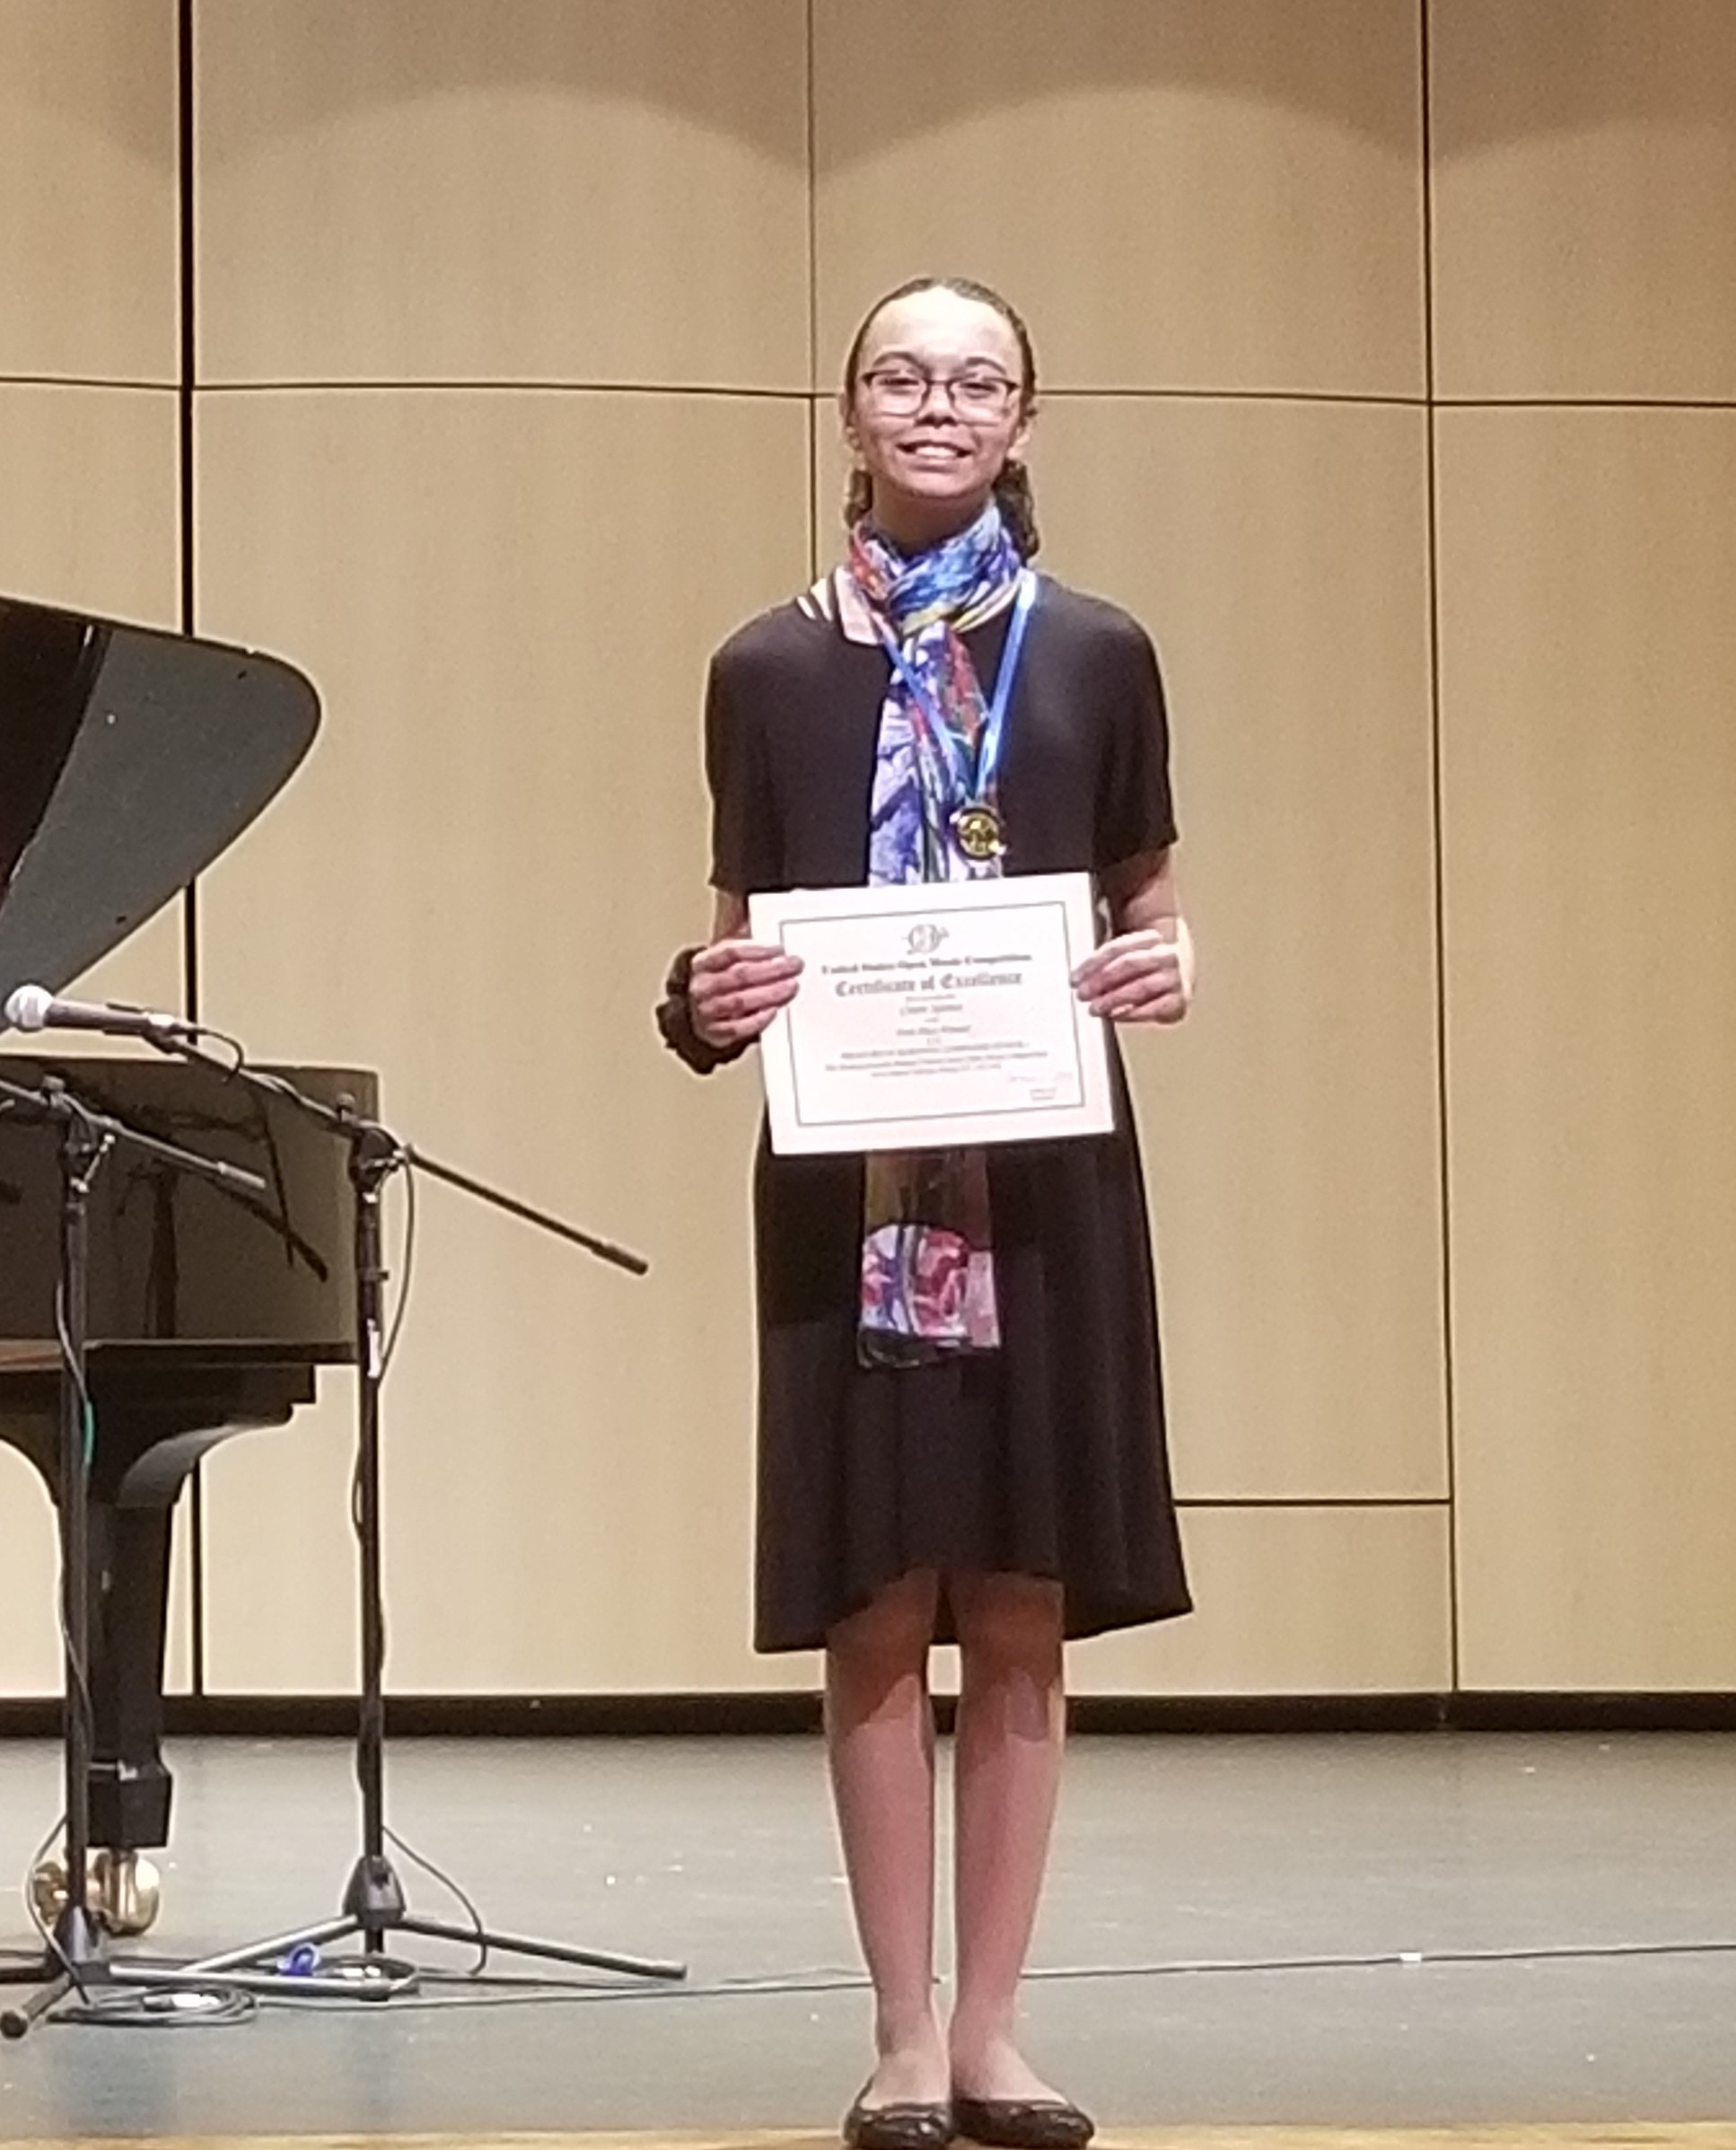 Claire S. at US Open Piano Competition